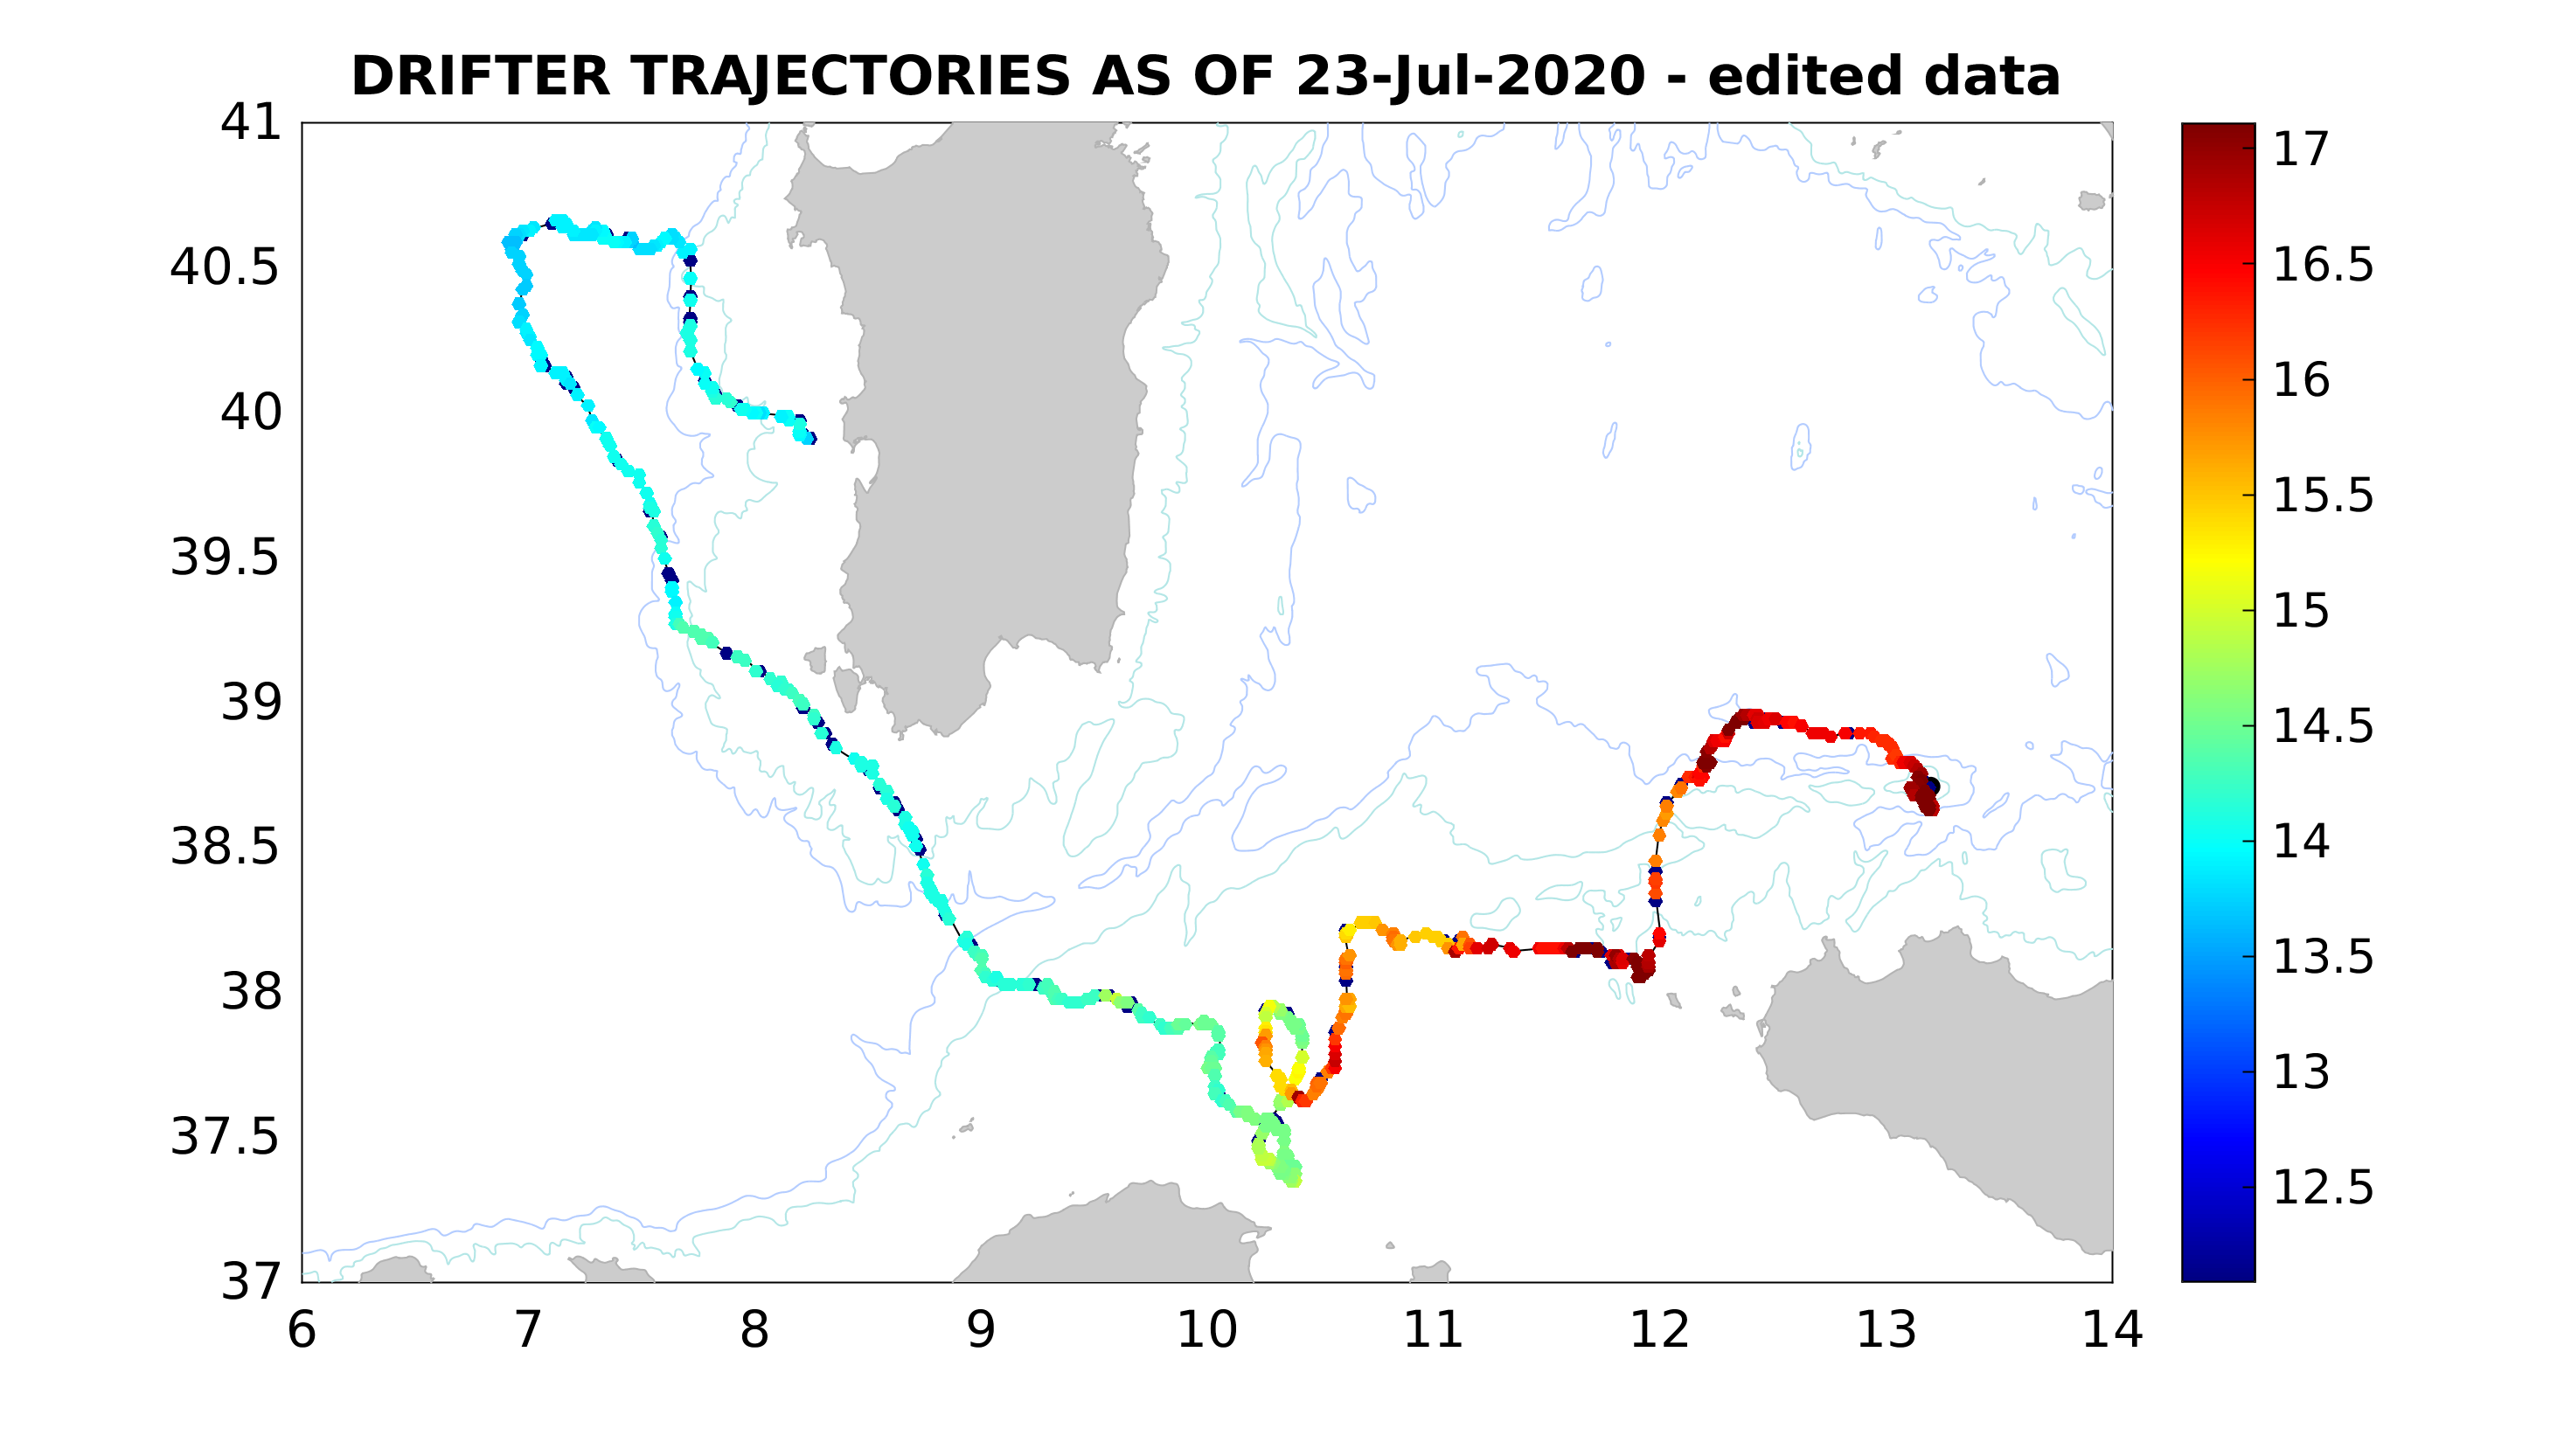 Trajectory with SST